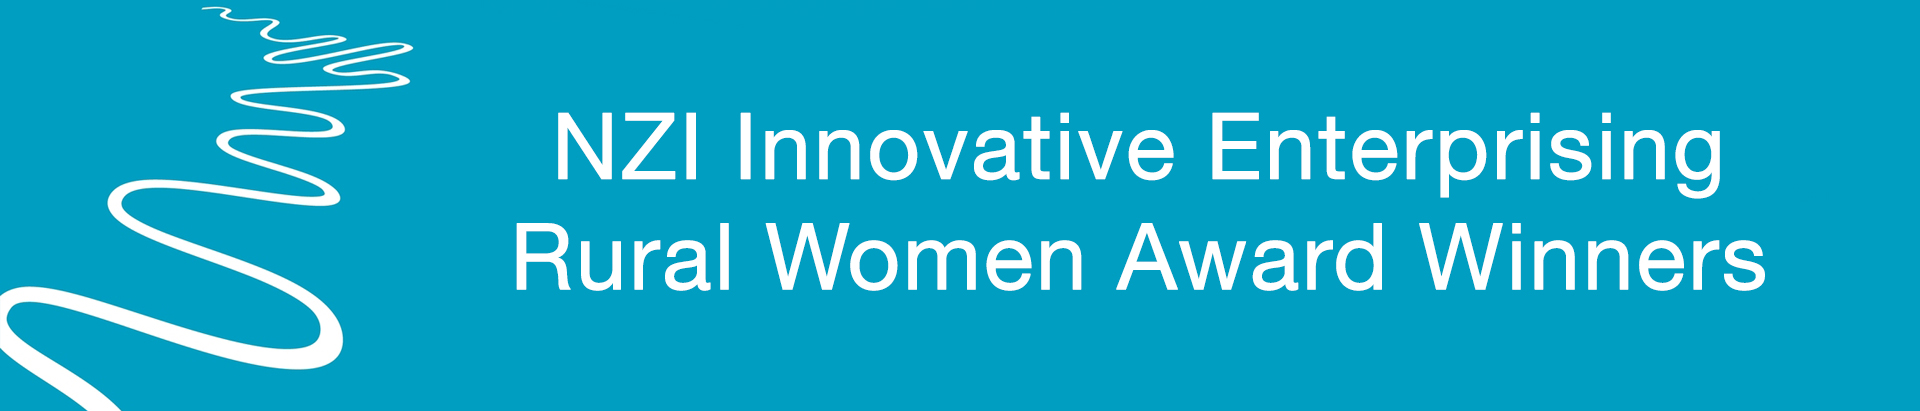 NZI Innovative Enterprising Rural Women Award Winners